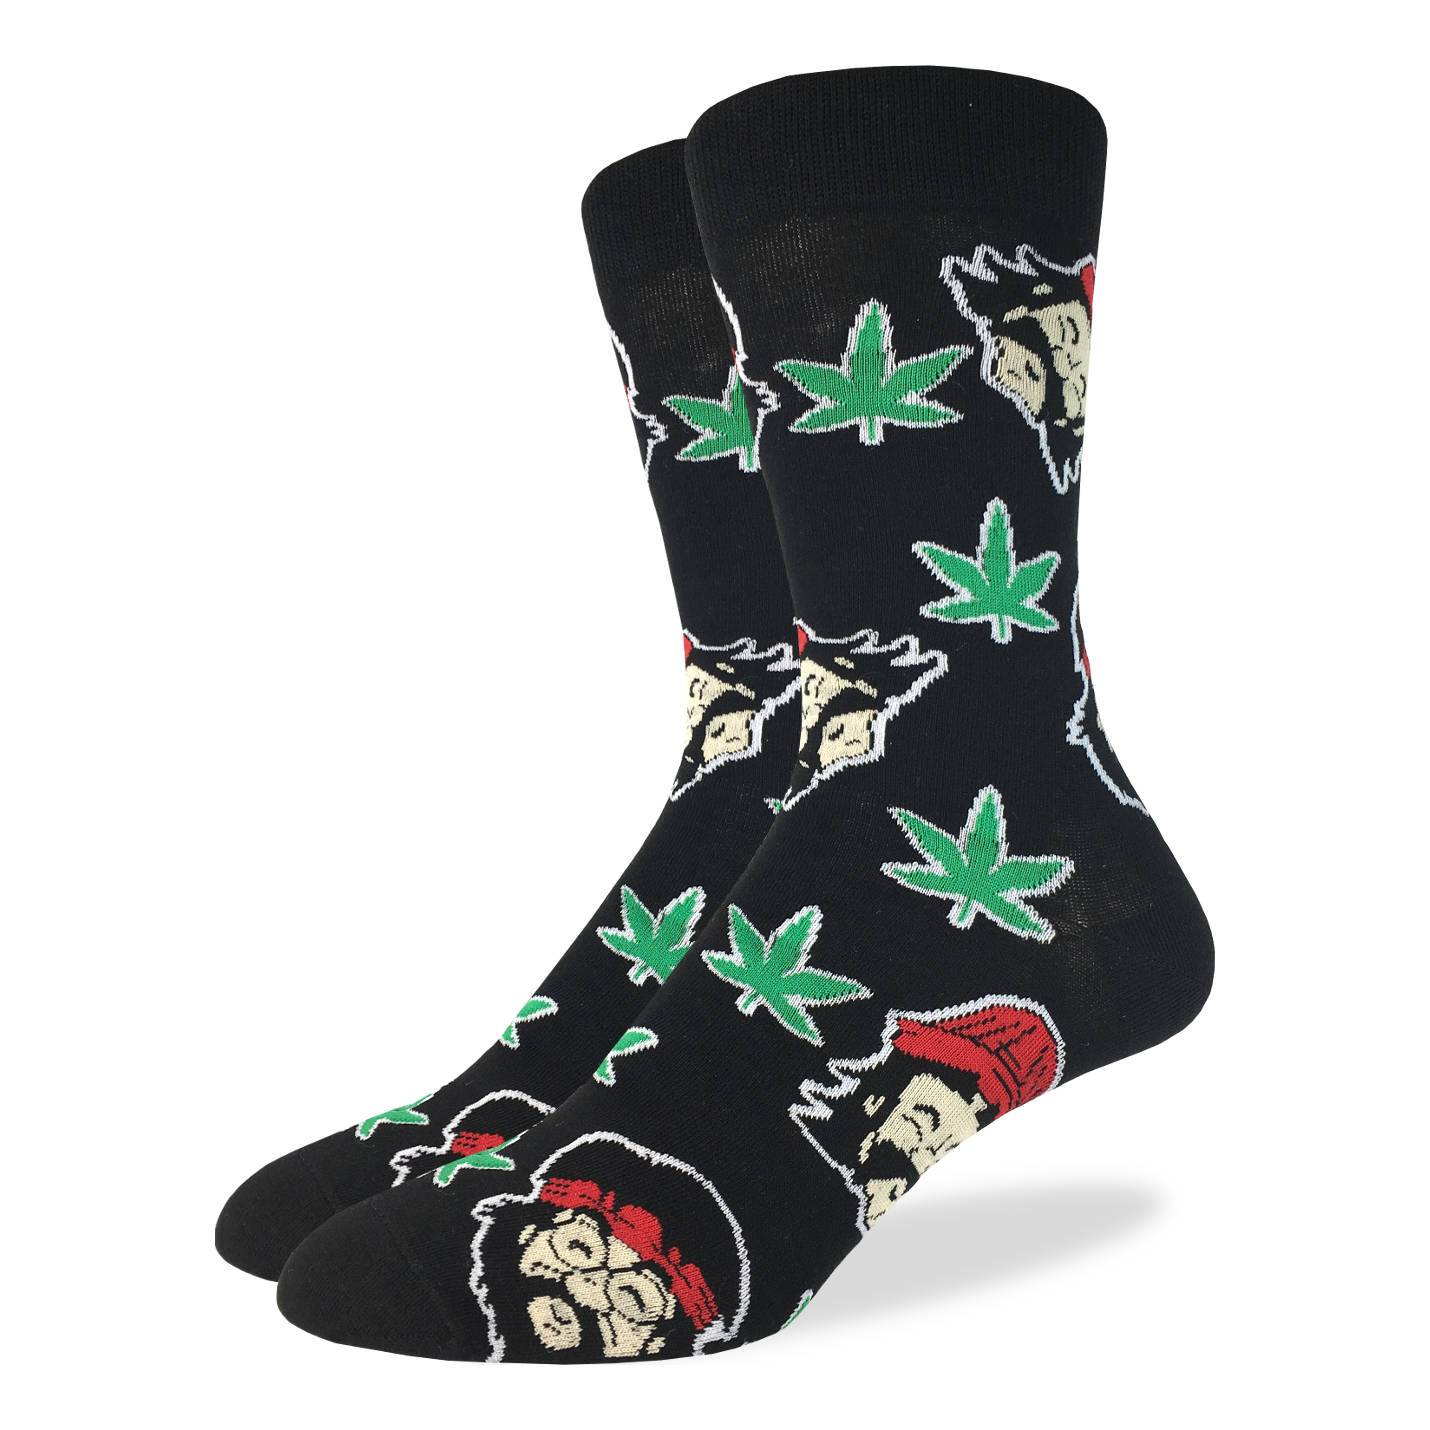 Cheech and Chong Crew Socks